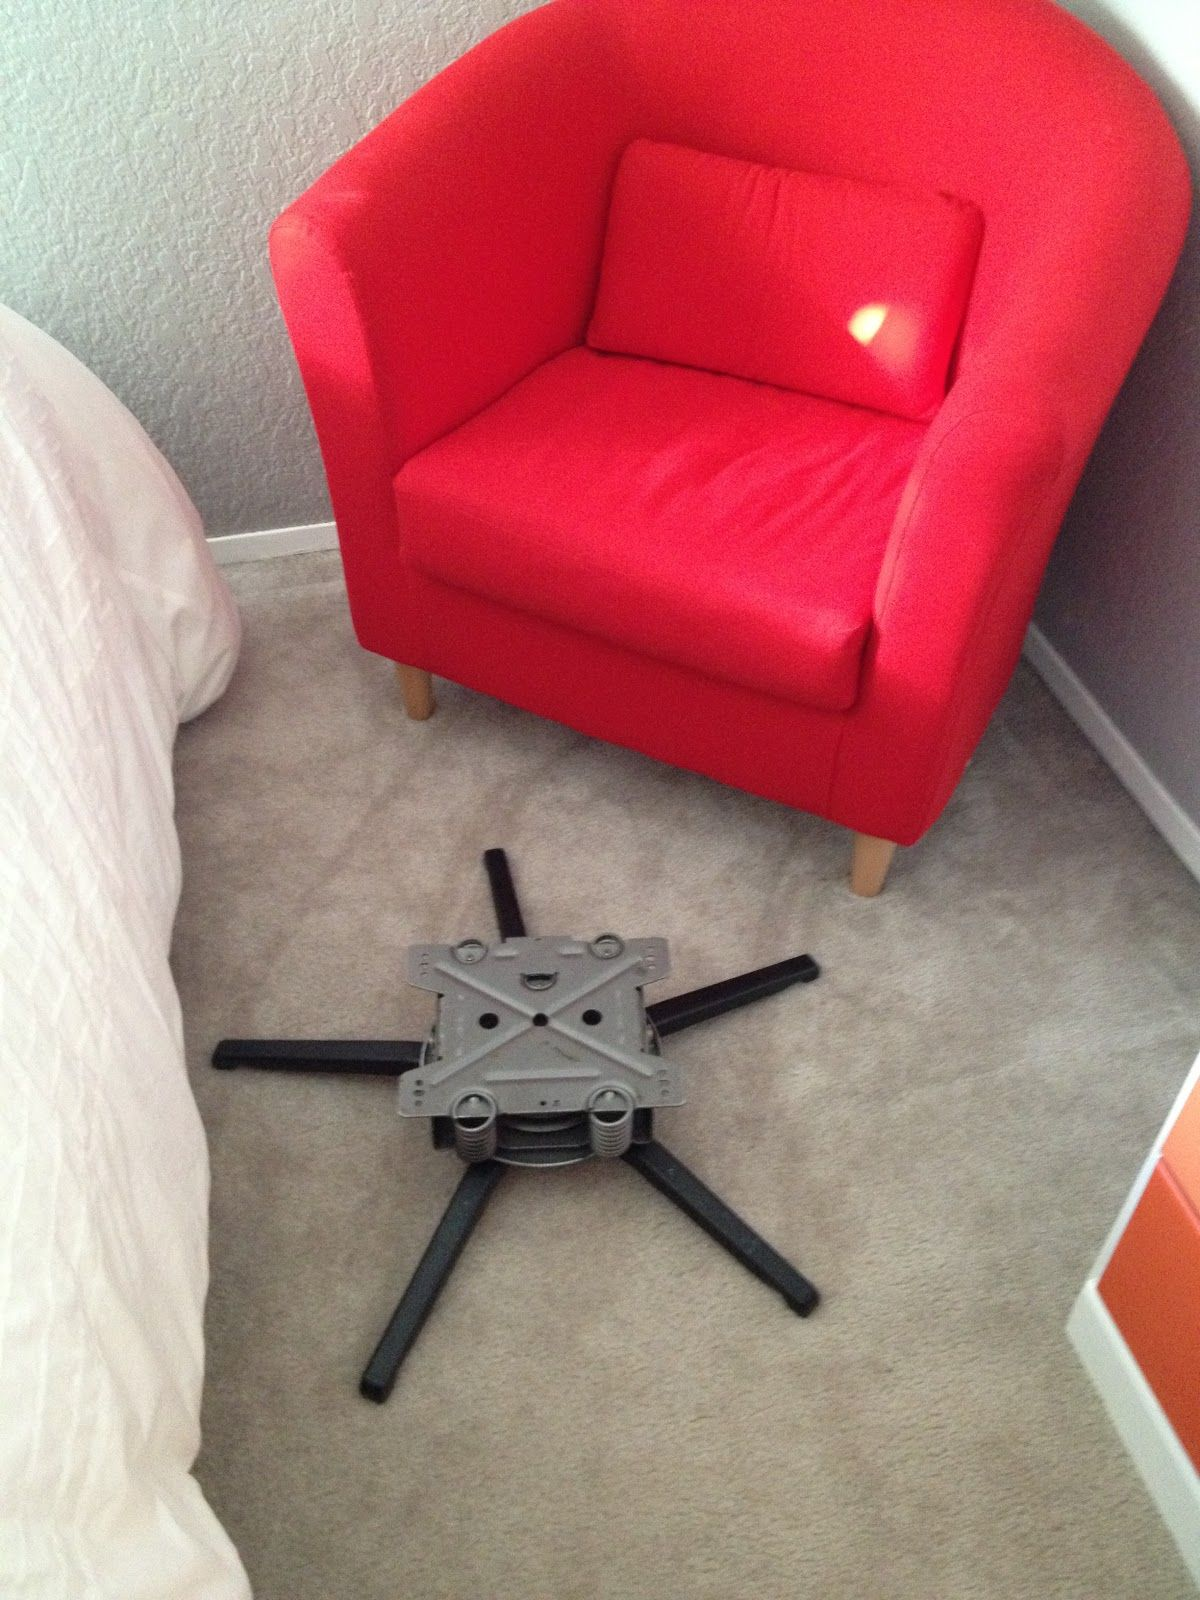 Butler Life Ikea Chair To Rocking Another Take On Hacking A My Is White Though Just Like The Idea Of Converting It